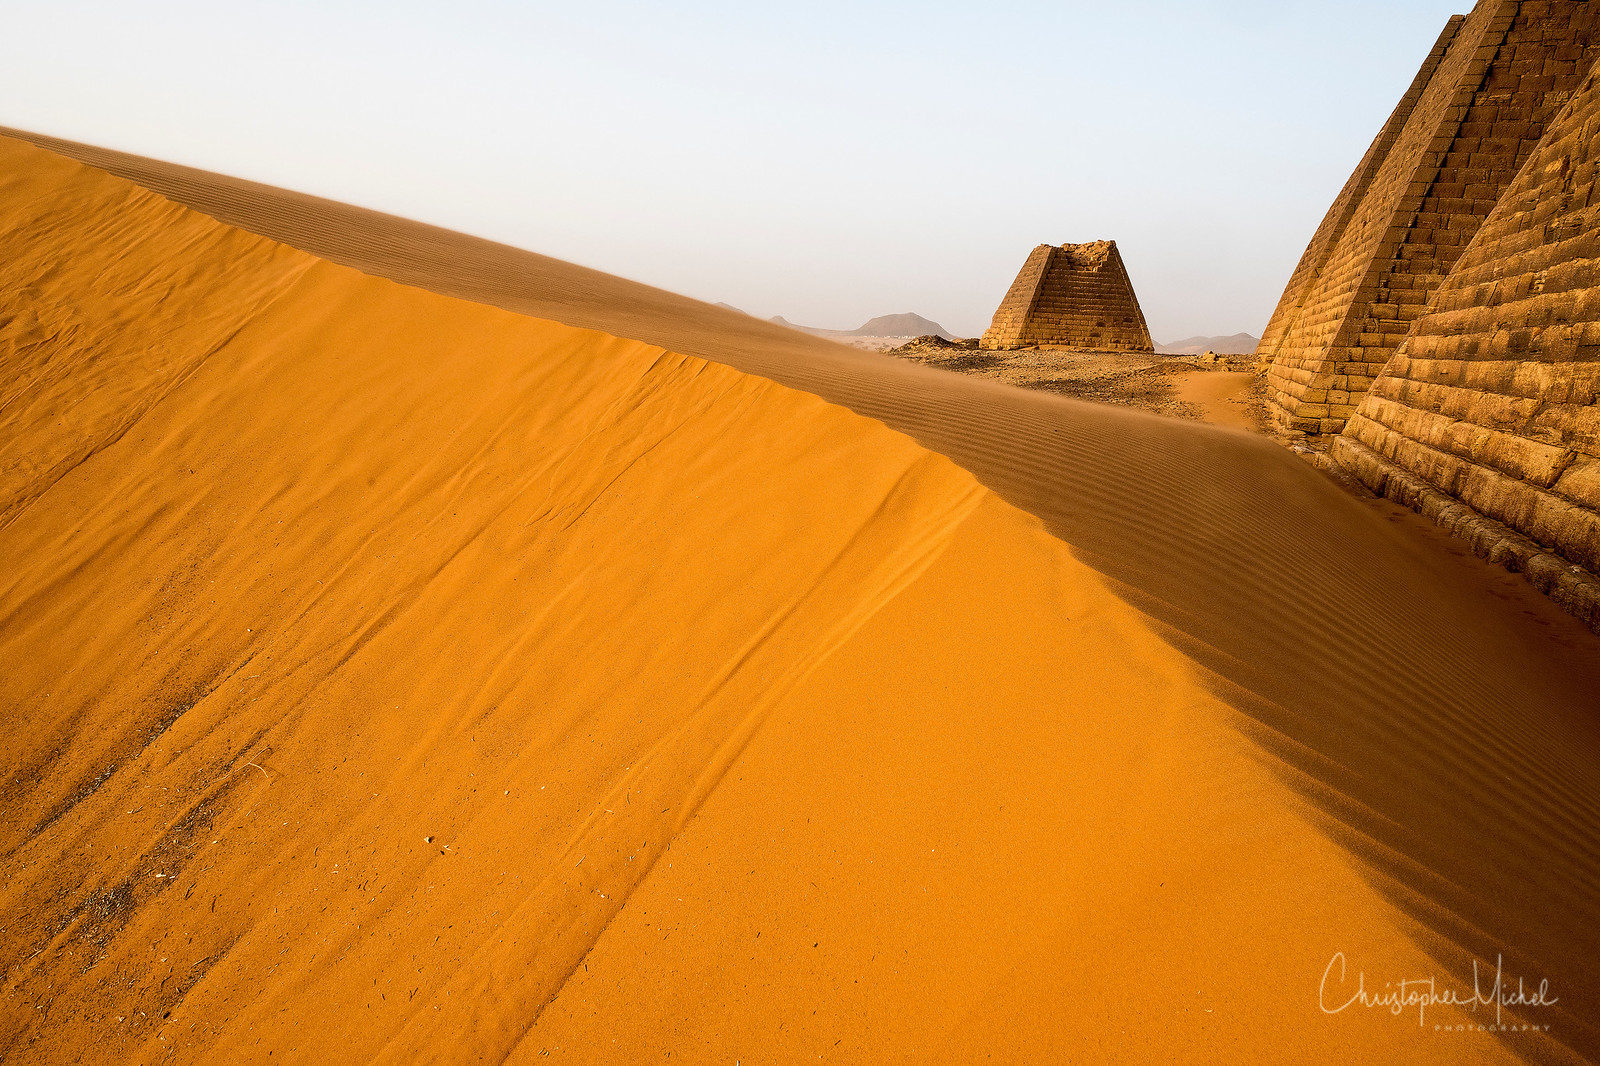 Wind sculpted san dunes surround the pyramids.